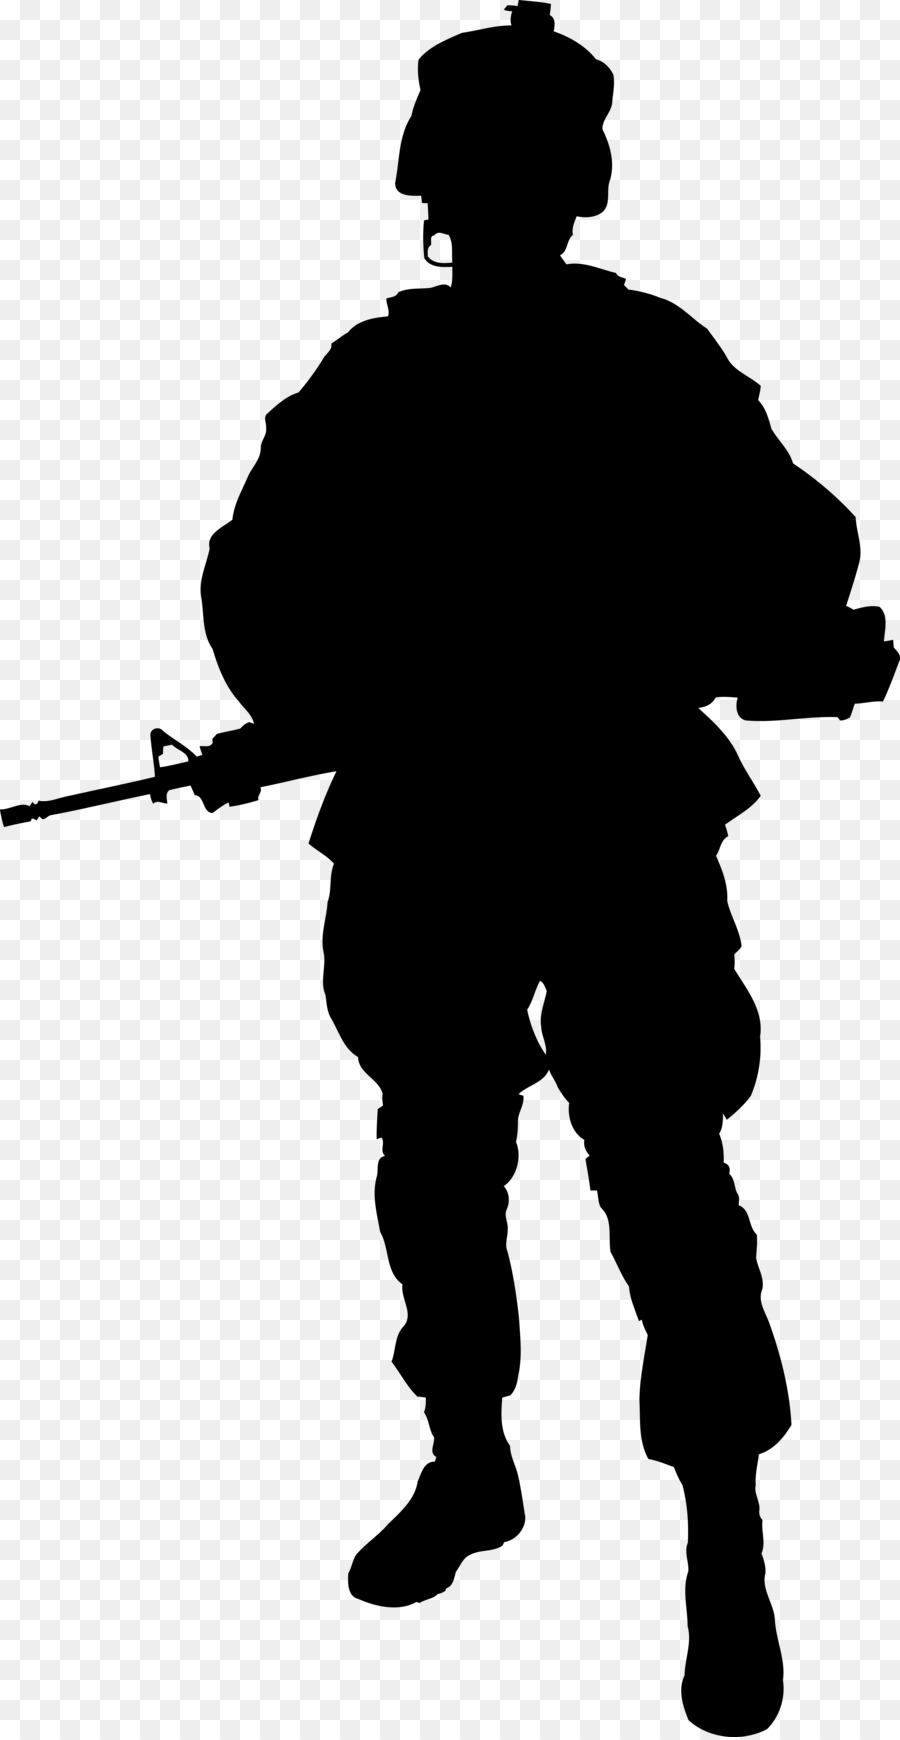 silhouette of soldier world war 1 soldier silhouette at getdrawings free download soldier silhouette of